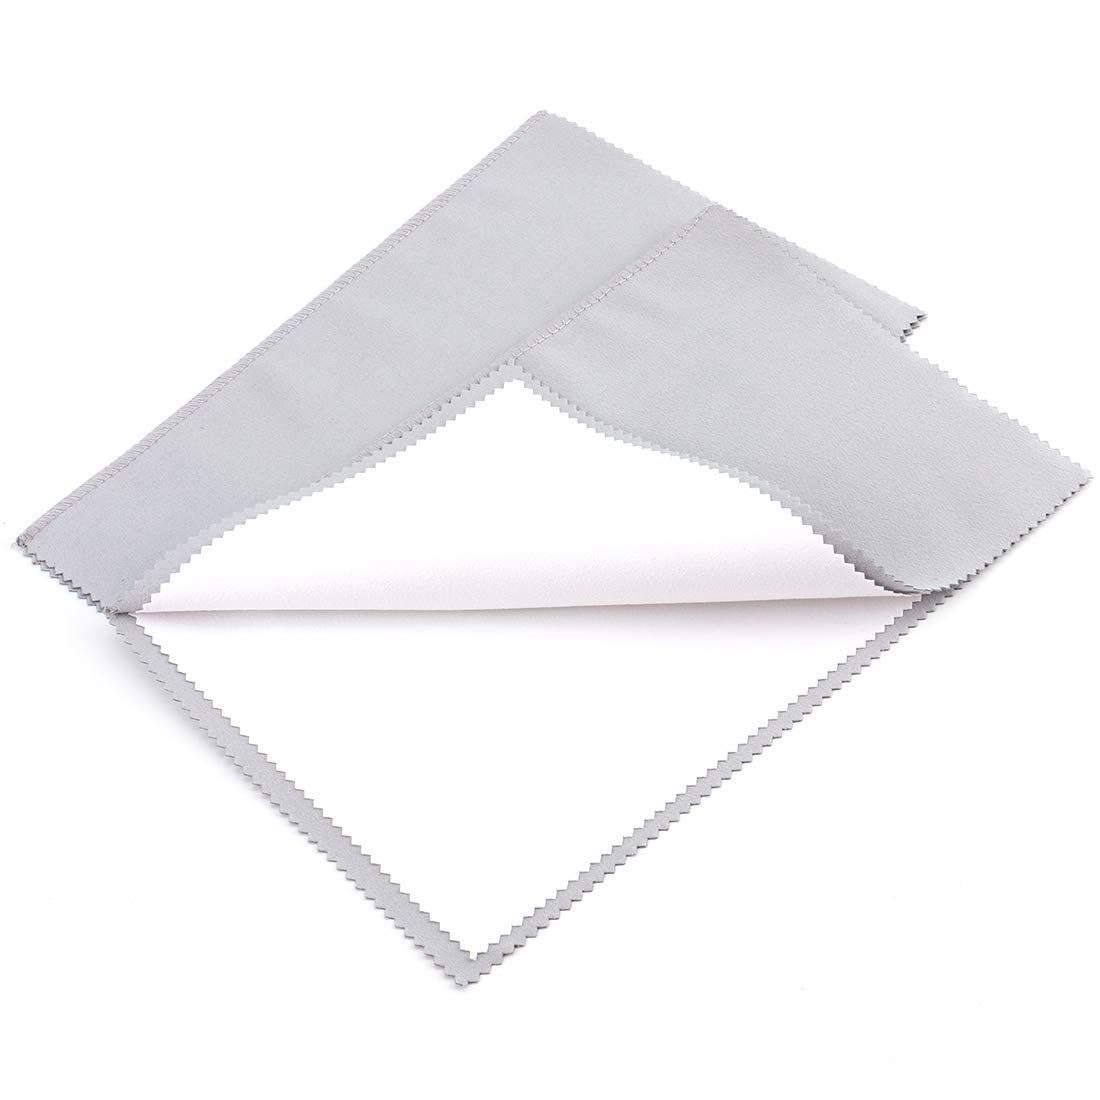 Foraineam 2 Pack Jewelry Polishing Cleaning Cloth for Cleaning Silver Gold and Platinum Jewelry Coins Gemstones Watches and Silverware